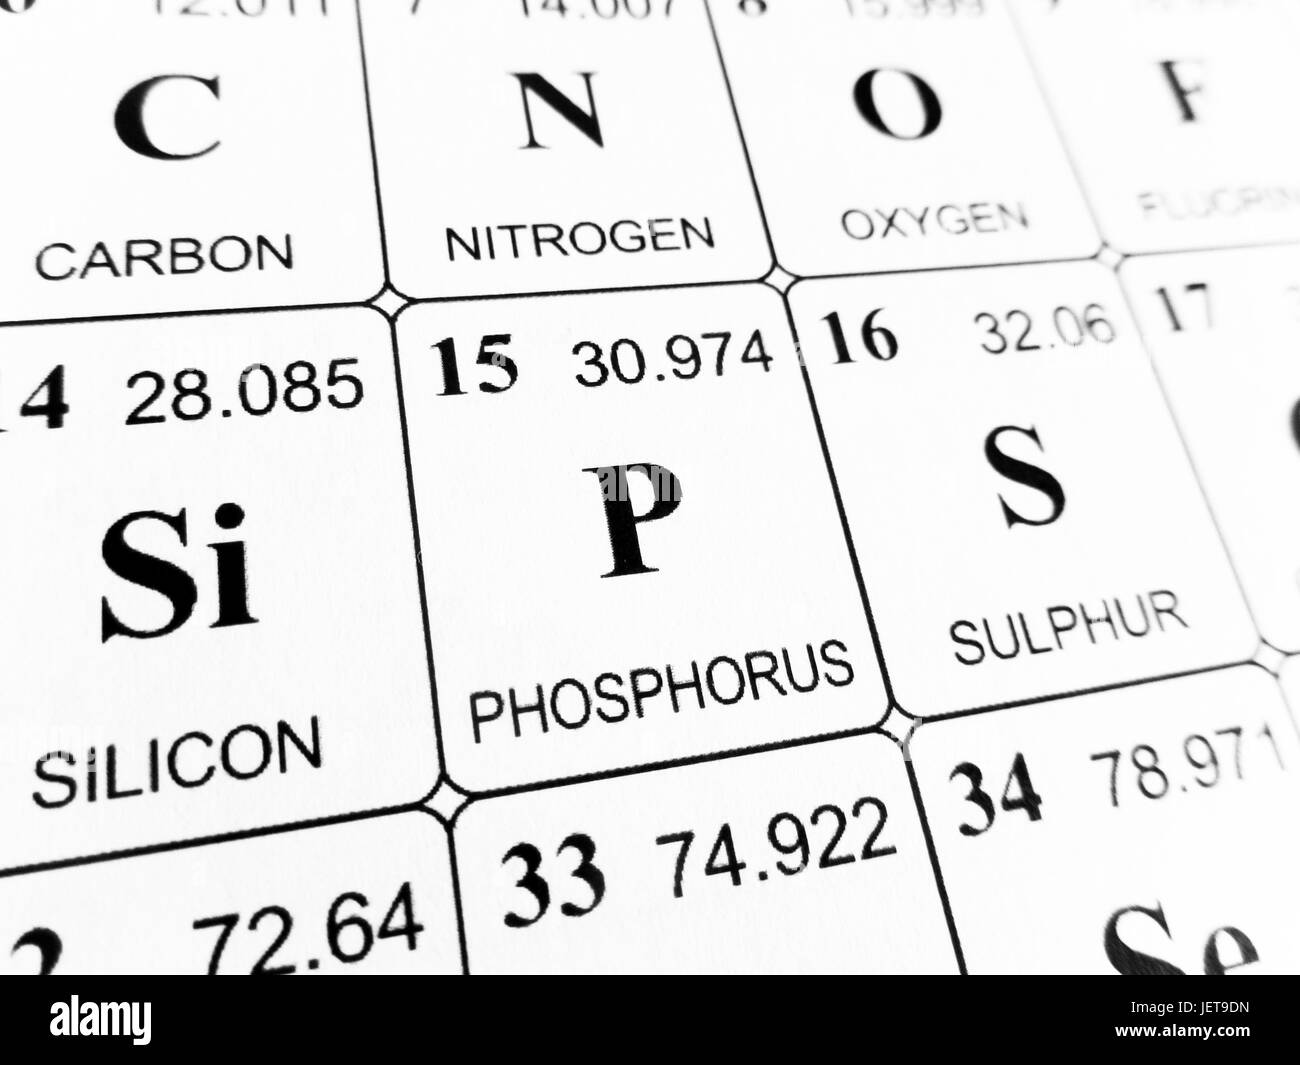 Phosphorus on the periodic table of the elements stock photo phosphorus on the periodic table of the elements gamestrikefo Gallery